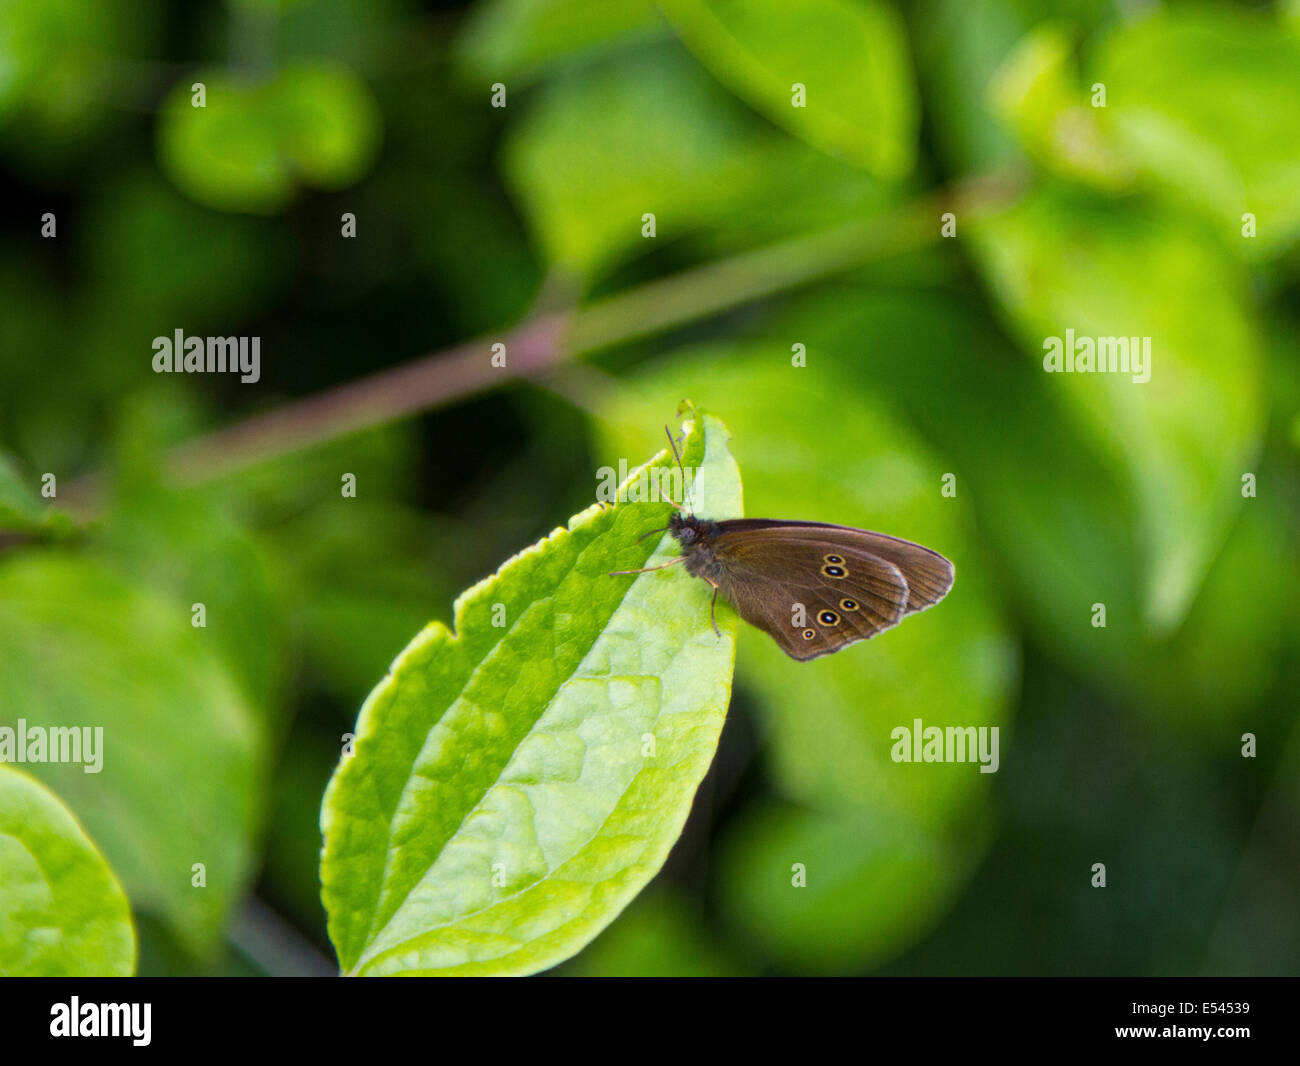 A ringlet butterfly showing the underside of its wings on a leaf in a Surrey field. Stock Photo